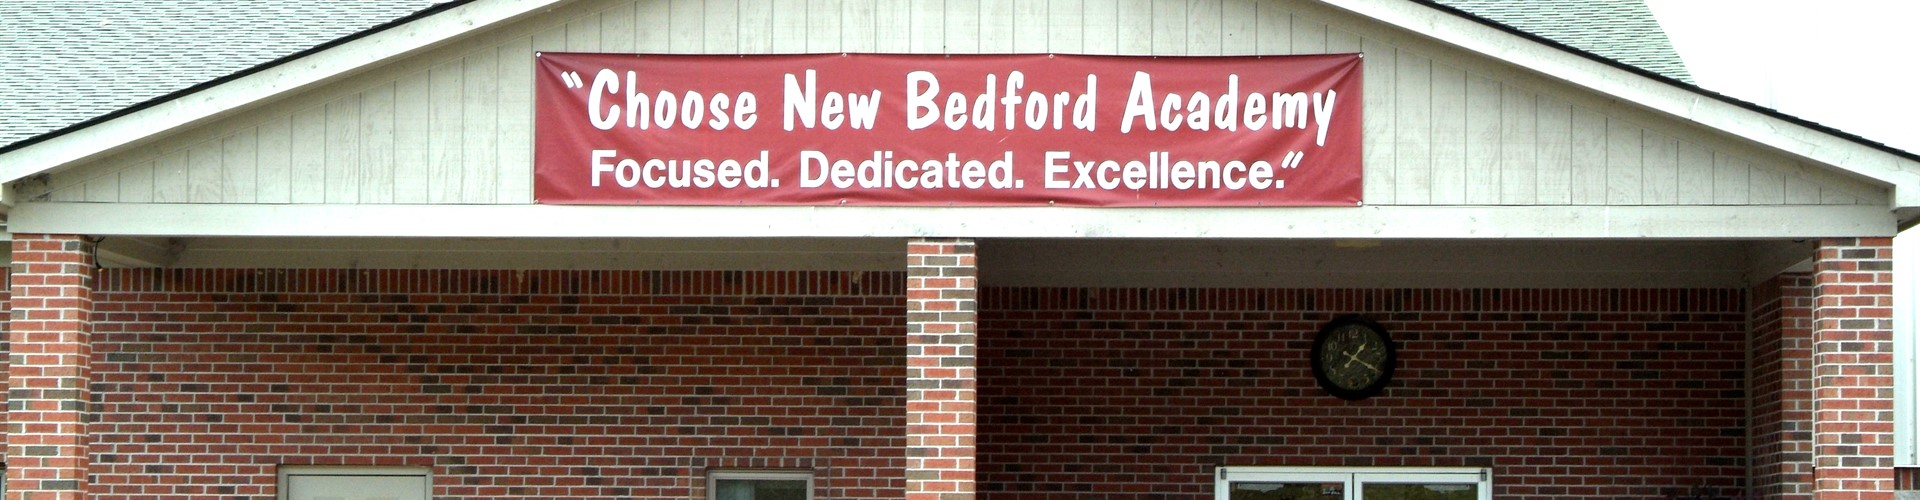 New Bedford Academy